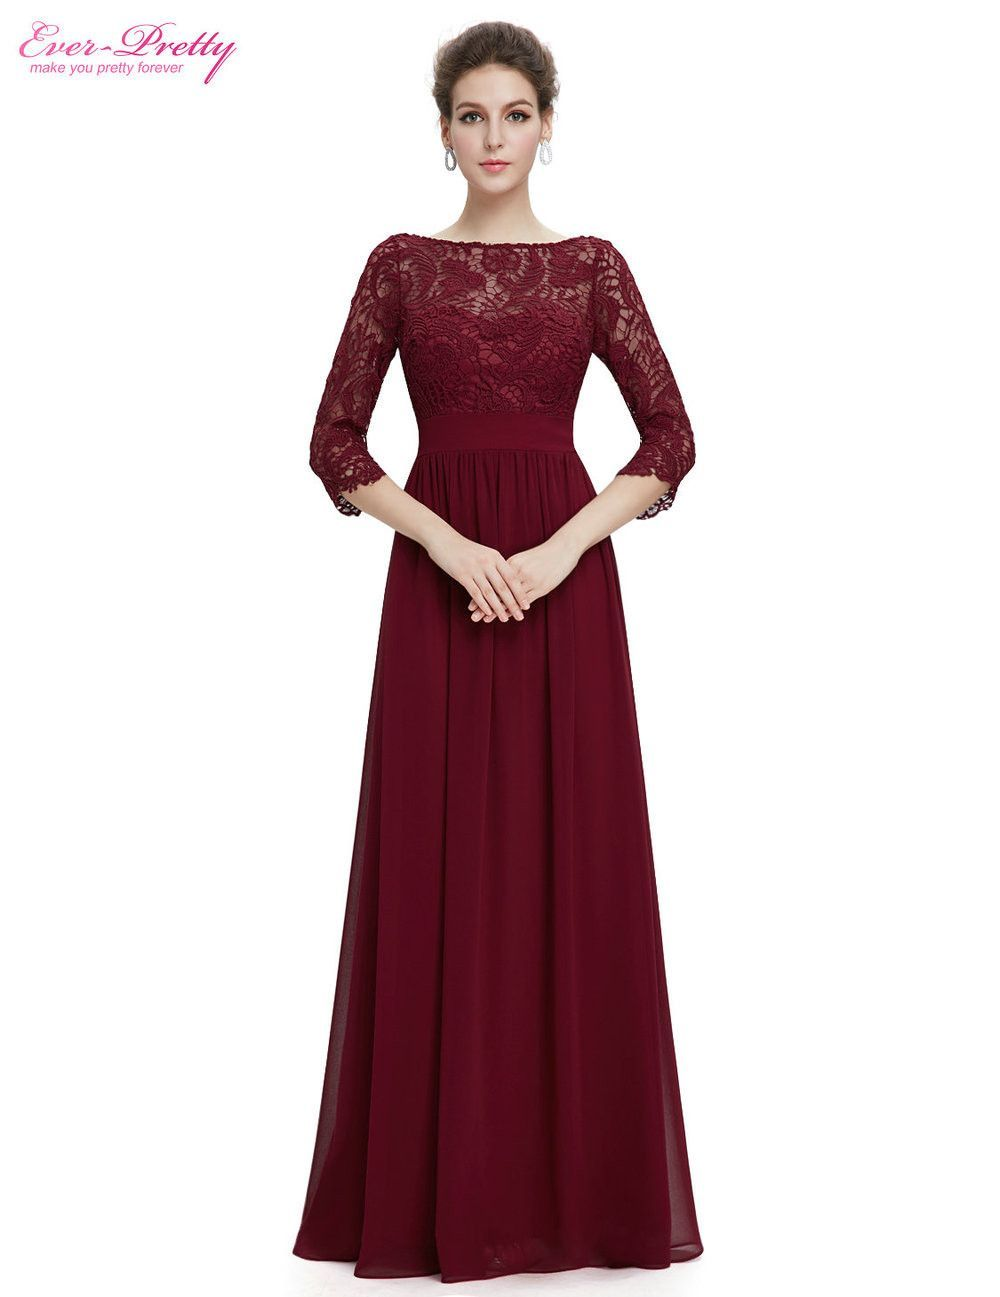 new arrival womenus elegant sleeve lace cheap sexy elegant